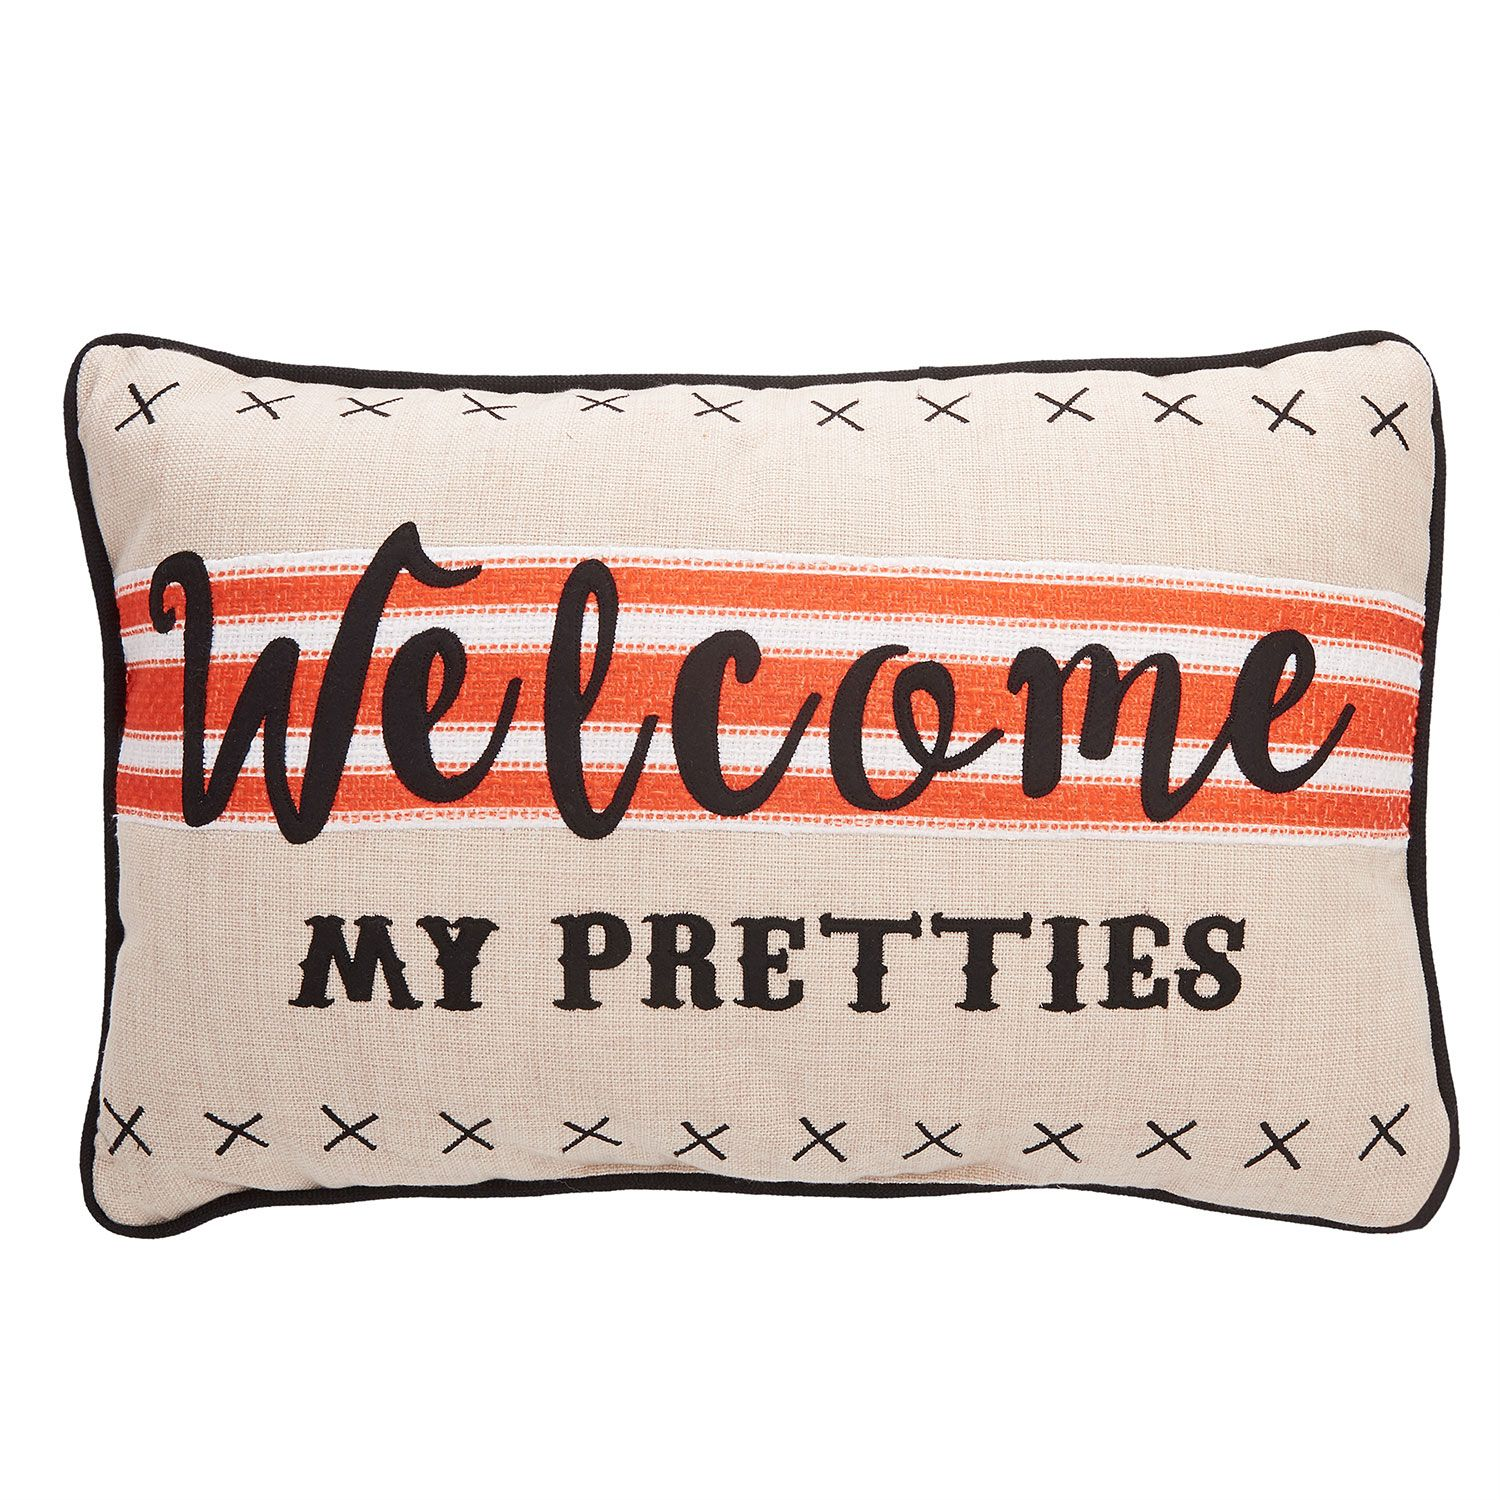 "Member's Mark Festive Harvest Pillow ""Welcome My Prettiest"" 22W x 14L"